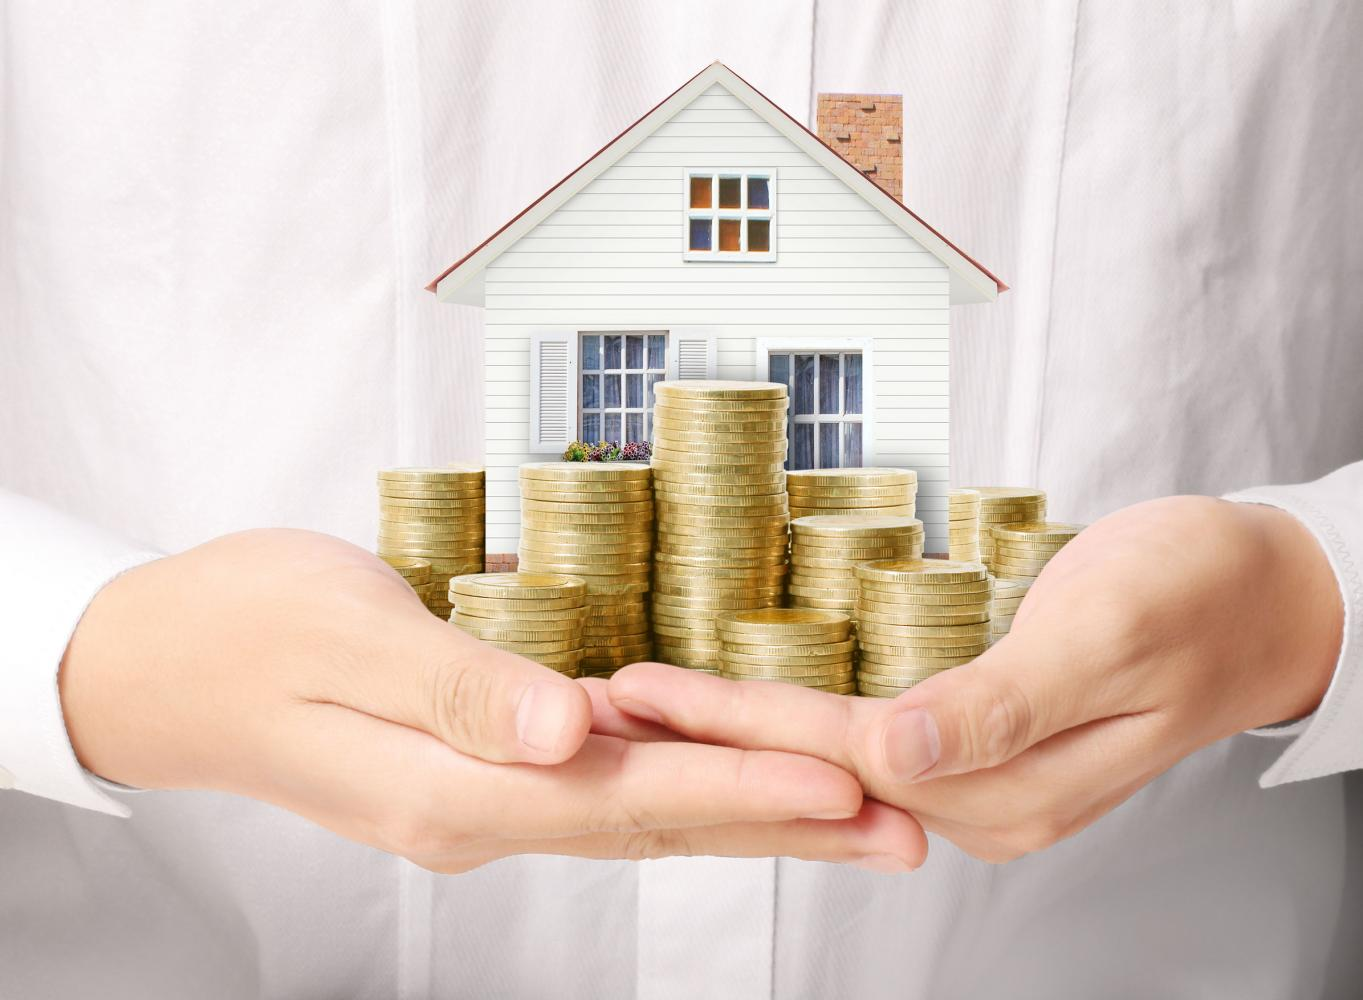 The real-estate backed tokens will function like a digital version of real estate investment trusts (REITs).123RF